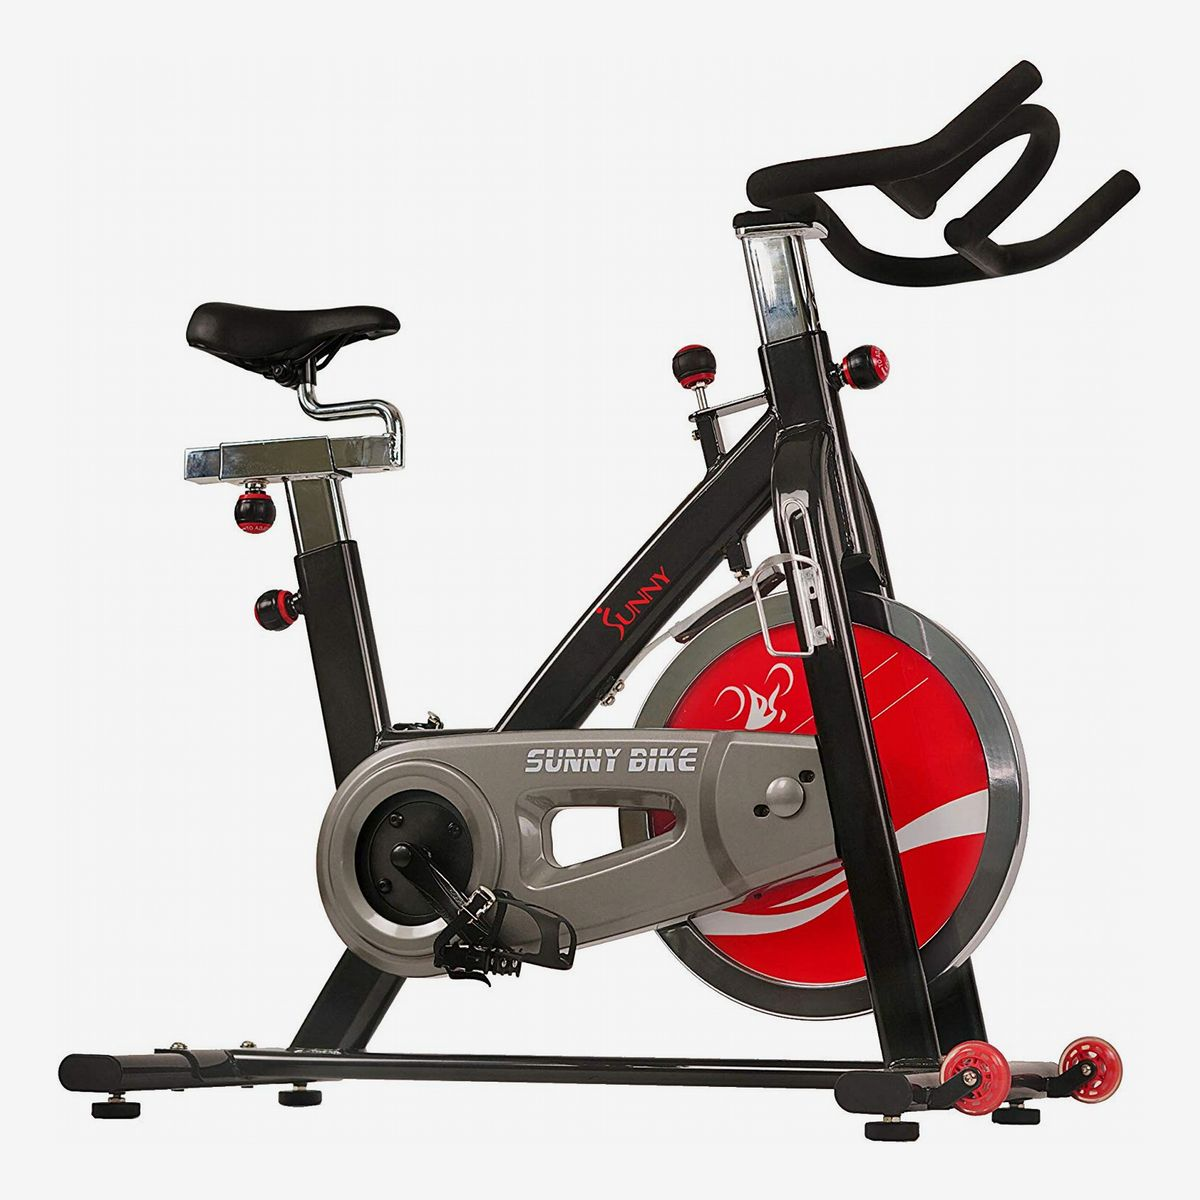 Portable Resistance Bike Trainer Indoor Bicycle Exercise Fitness Cardio Workout